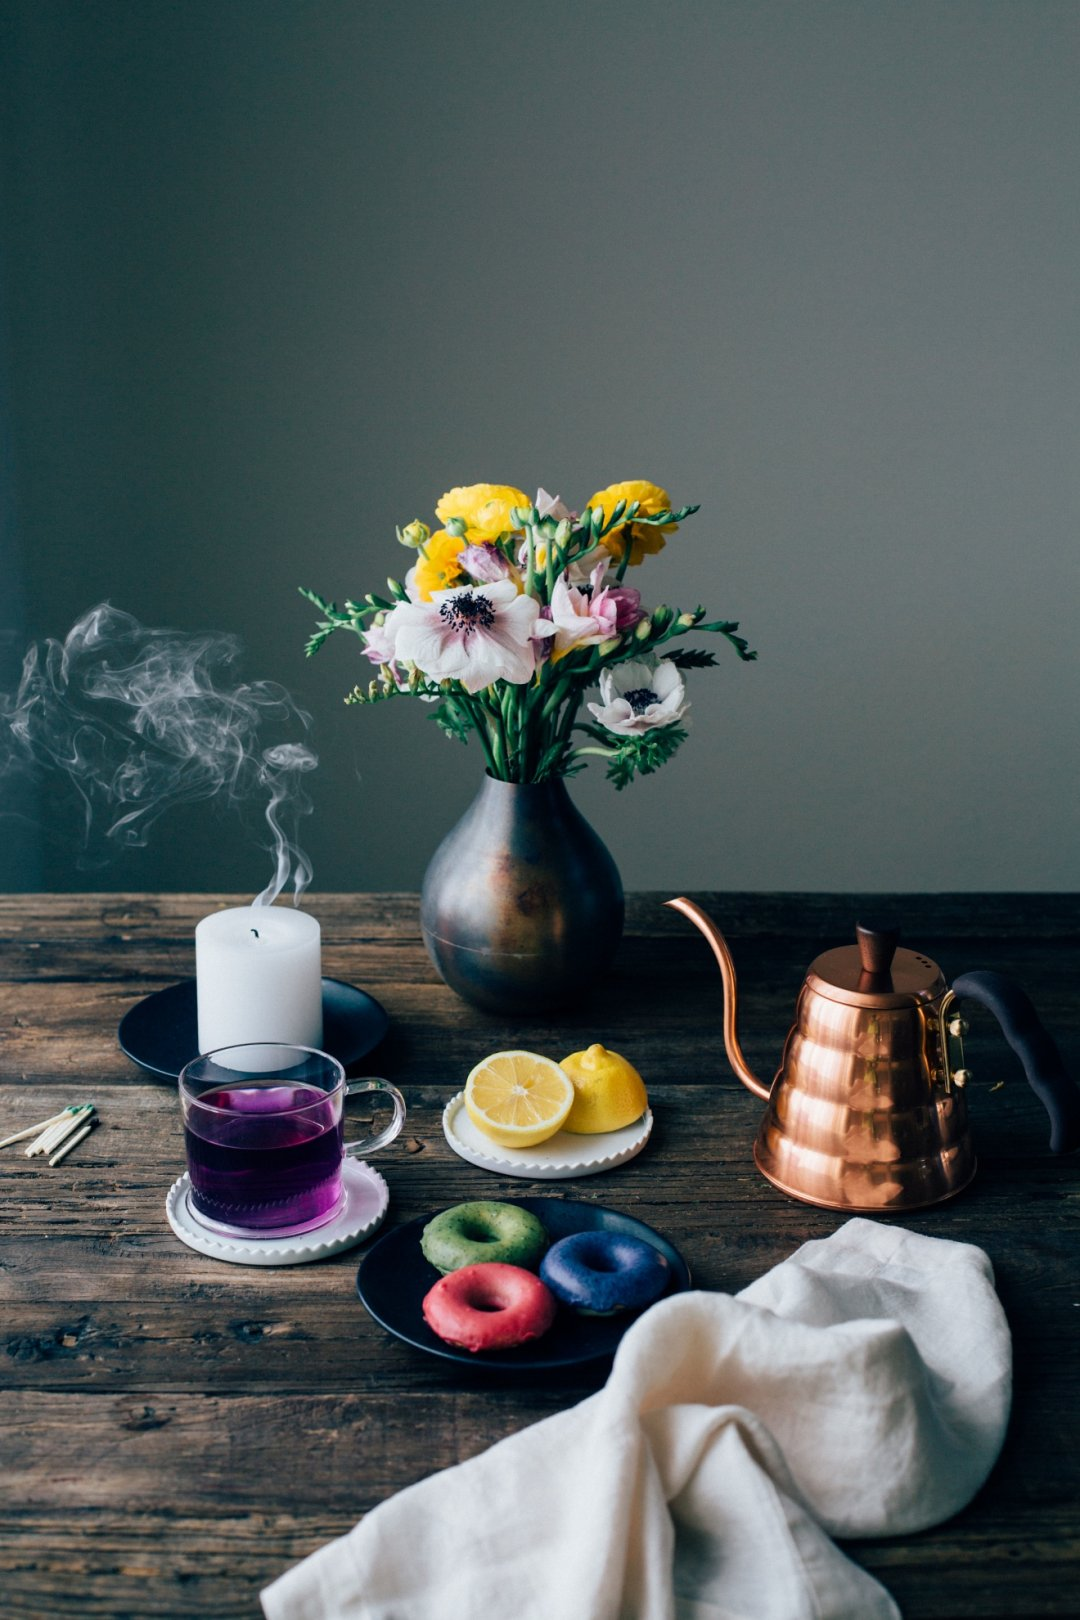 Vase with flowers, copper kettle, tea, and donuts